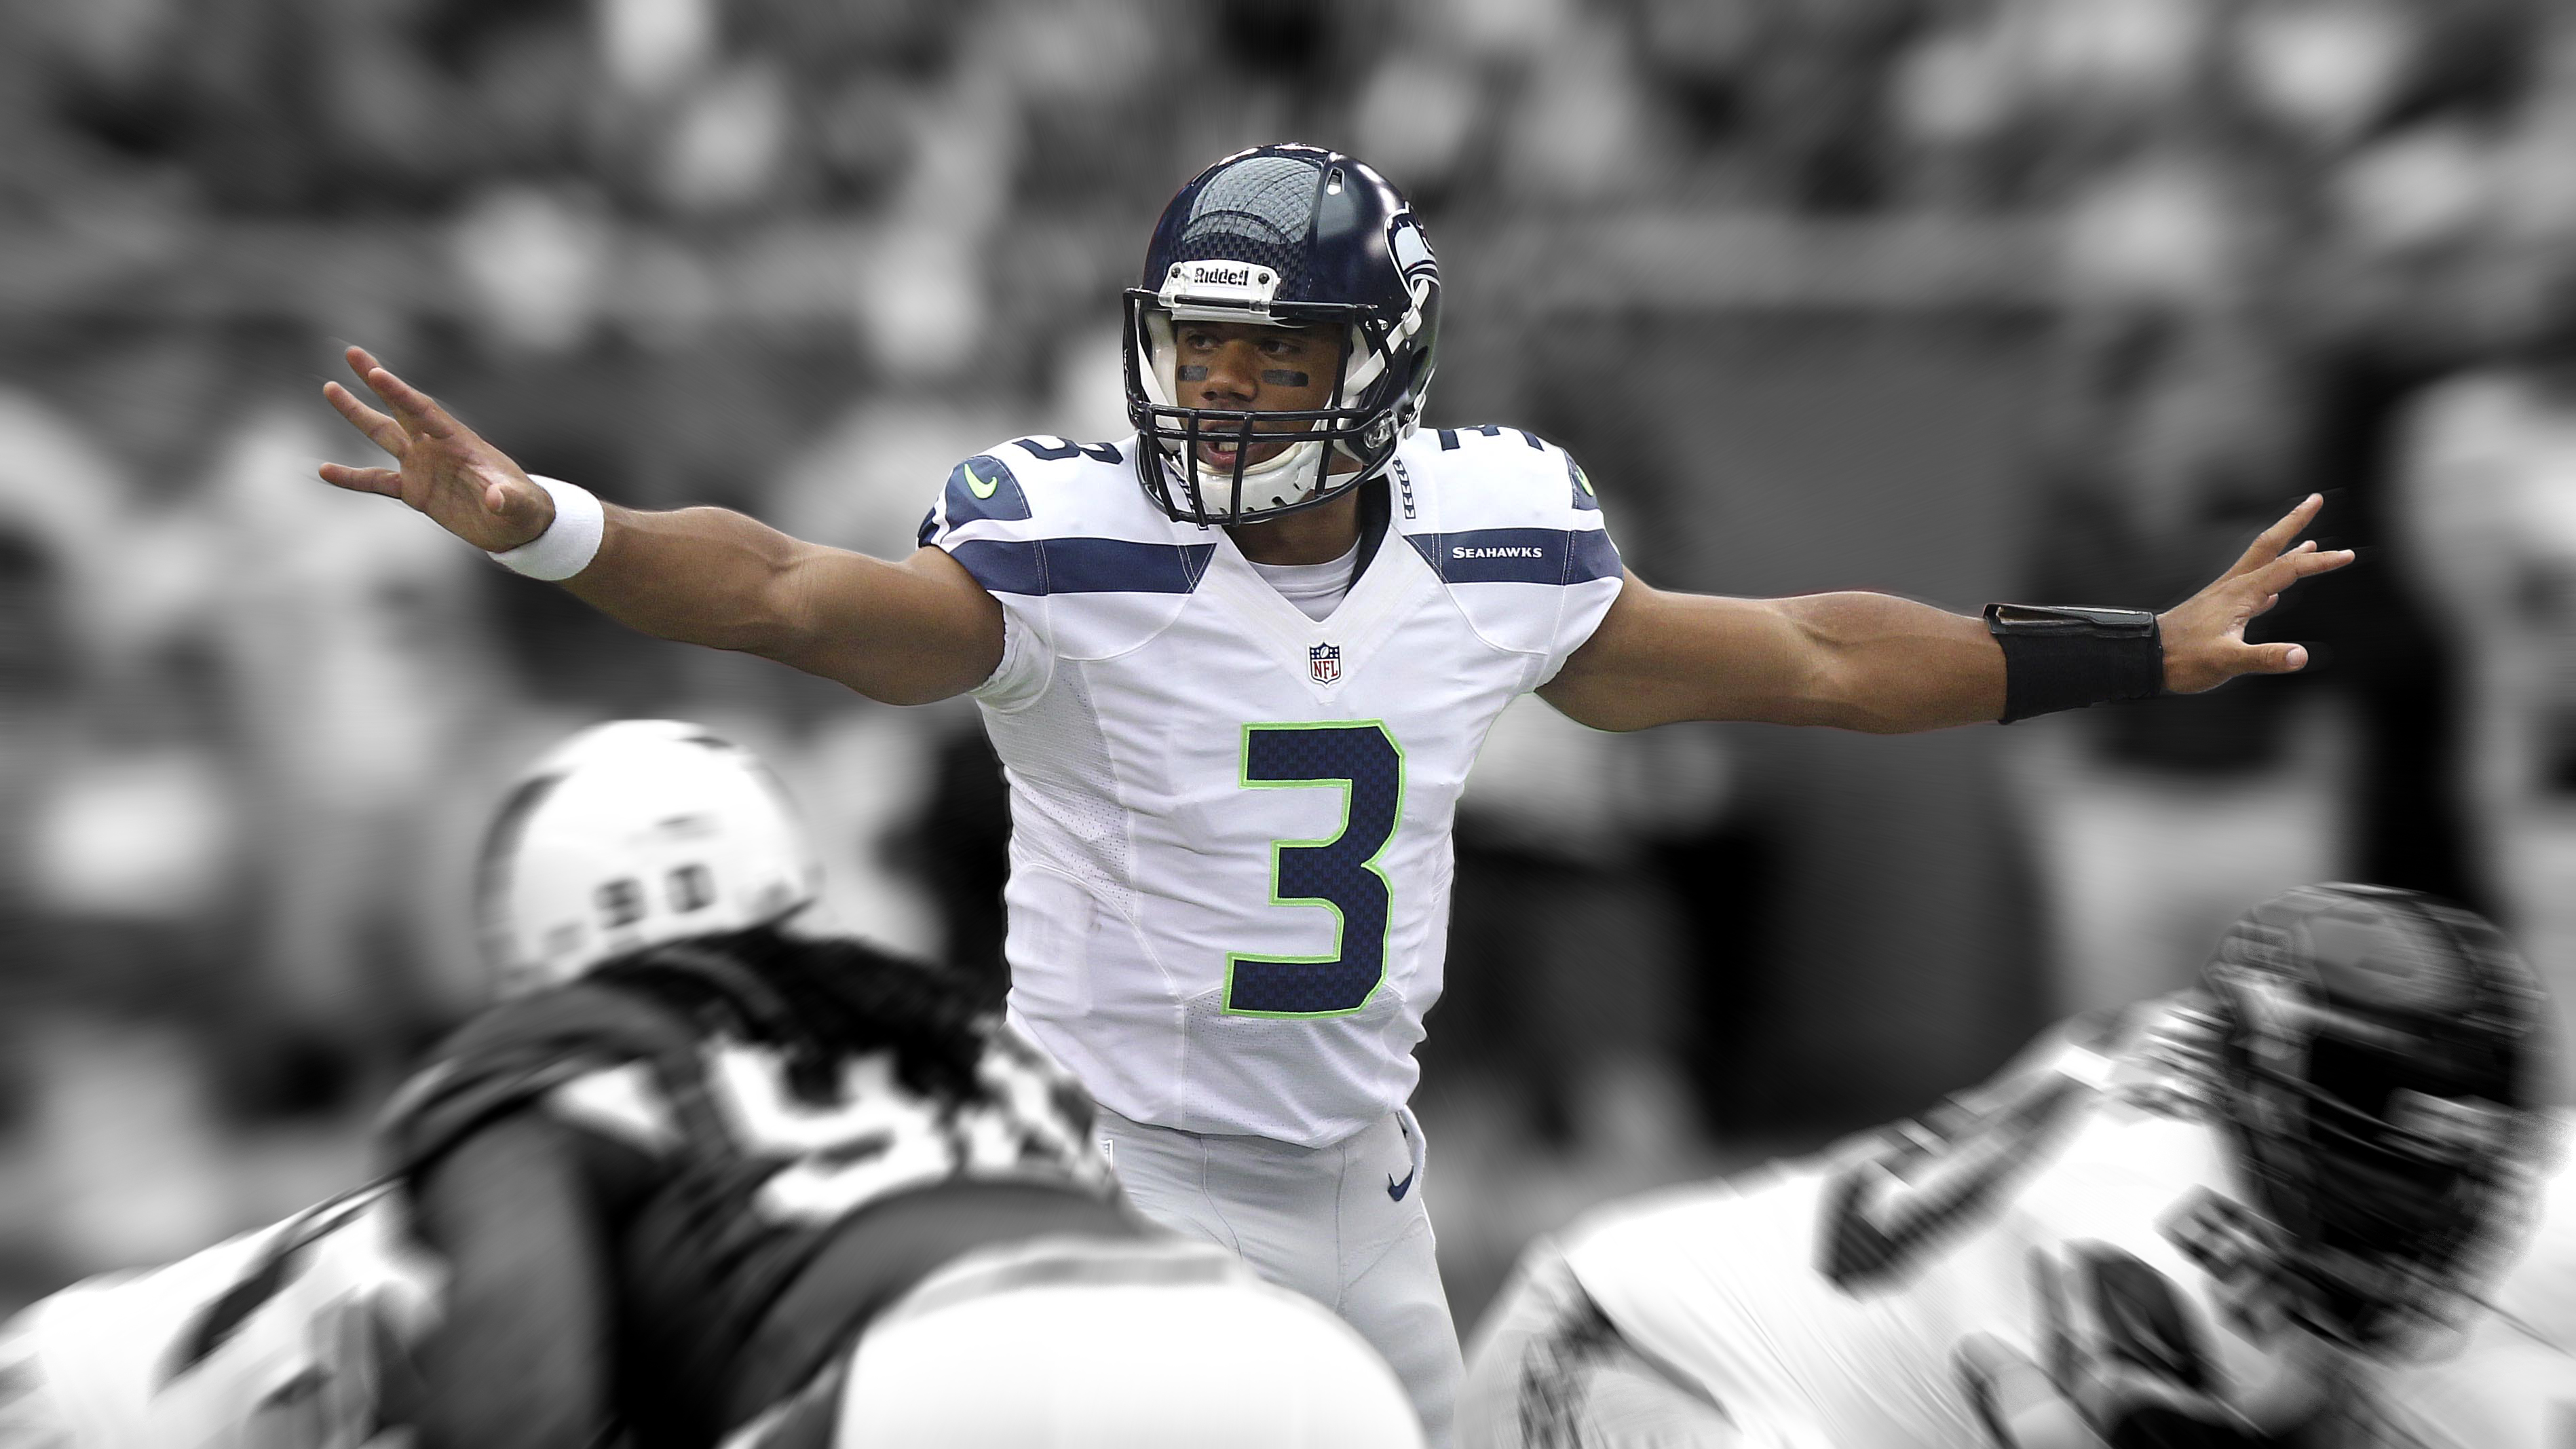 russell wilson wallpaper wallpapers - photo #9